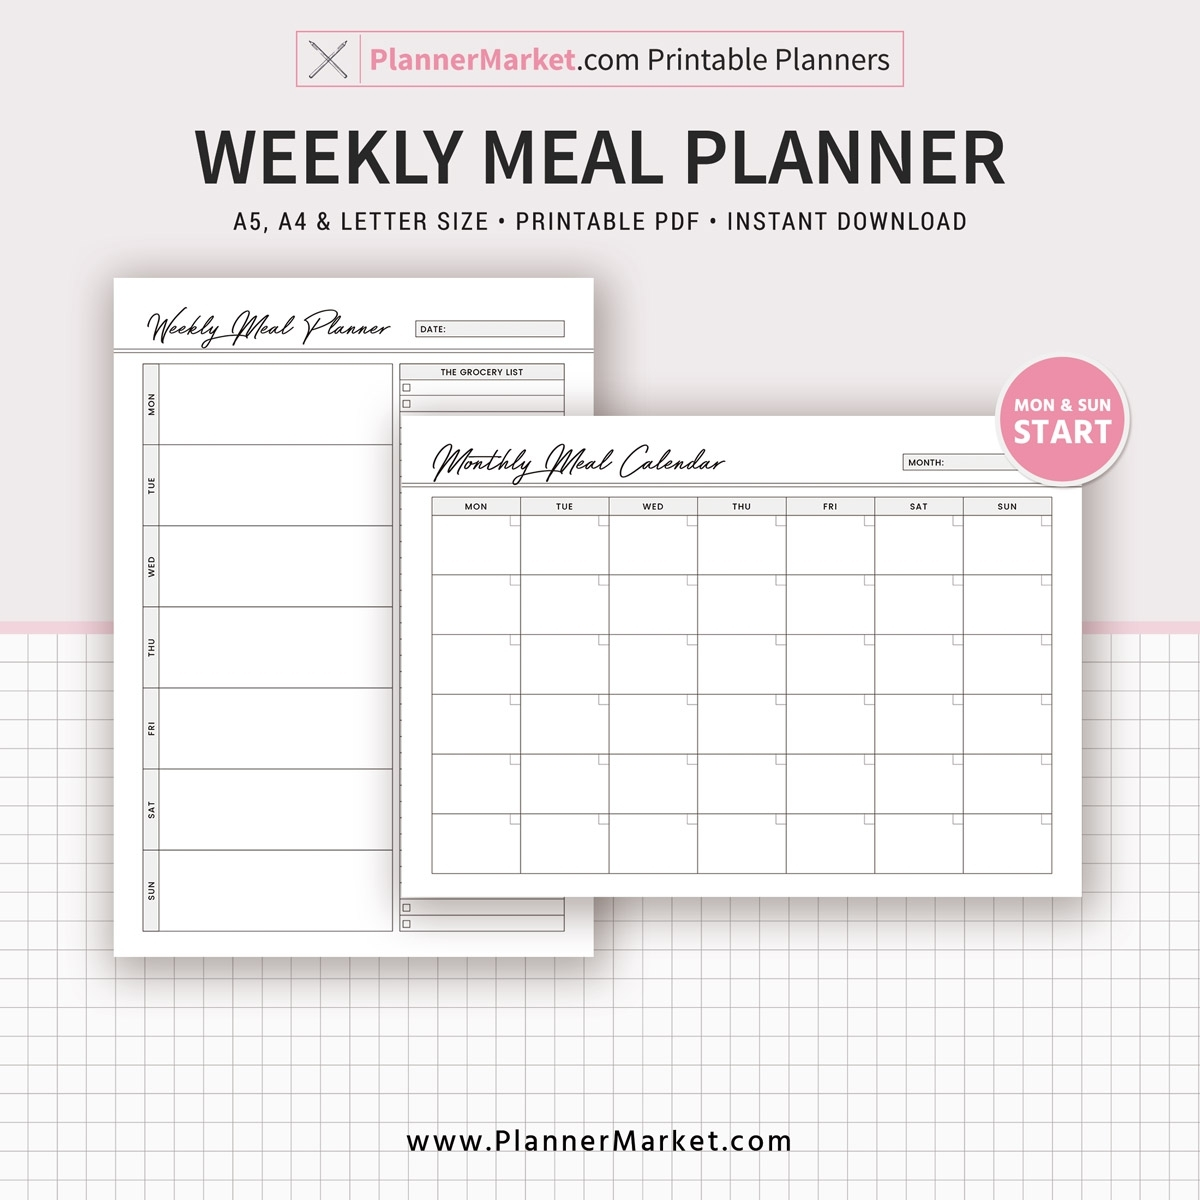 Weekly Meal Planner Inserts, 2020 Menu Planner, Monthly Meal Calendar, A5,  A4, Letter Size, Planner Refill, Planner Binder